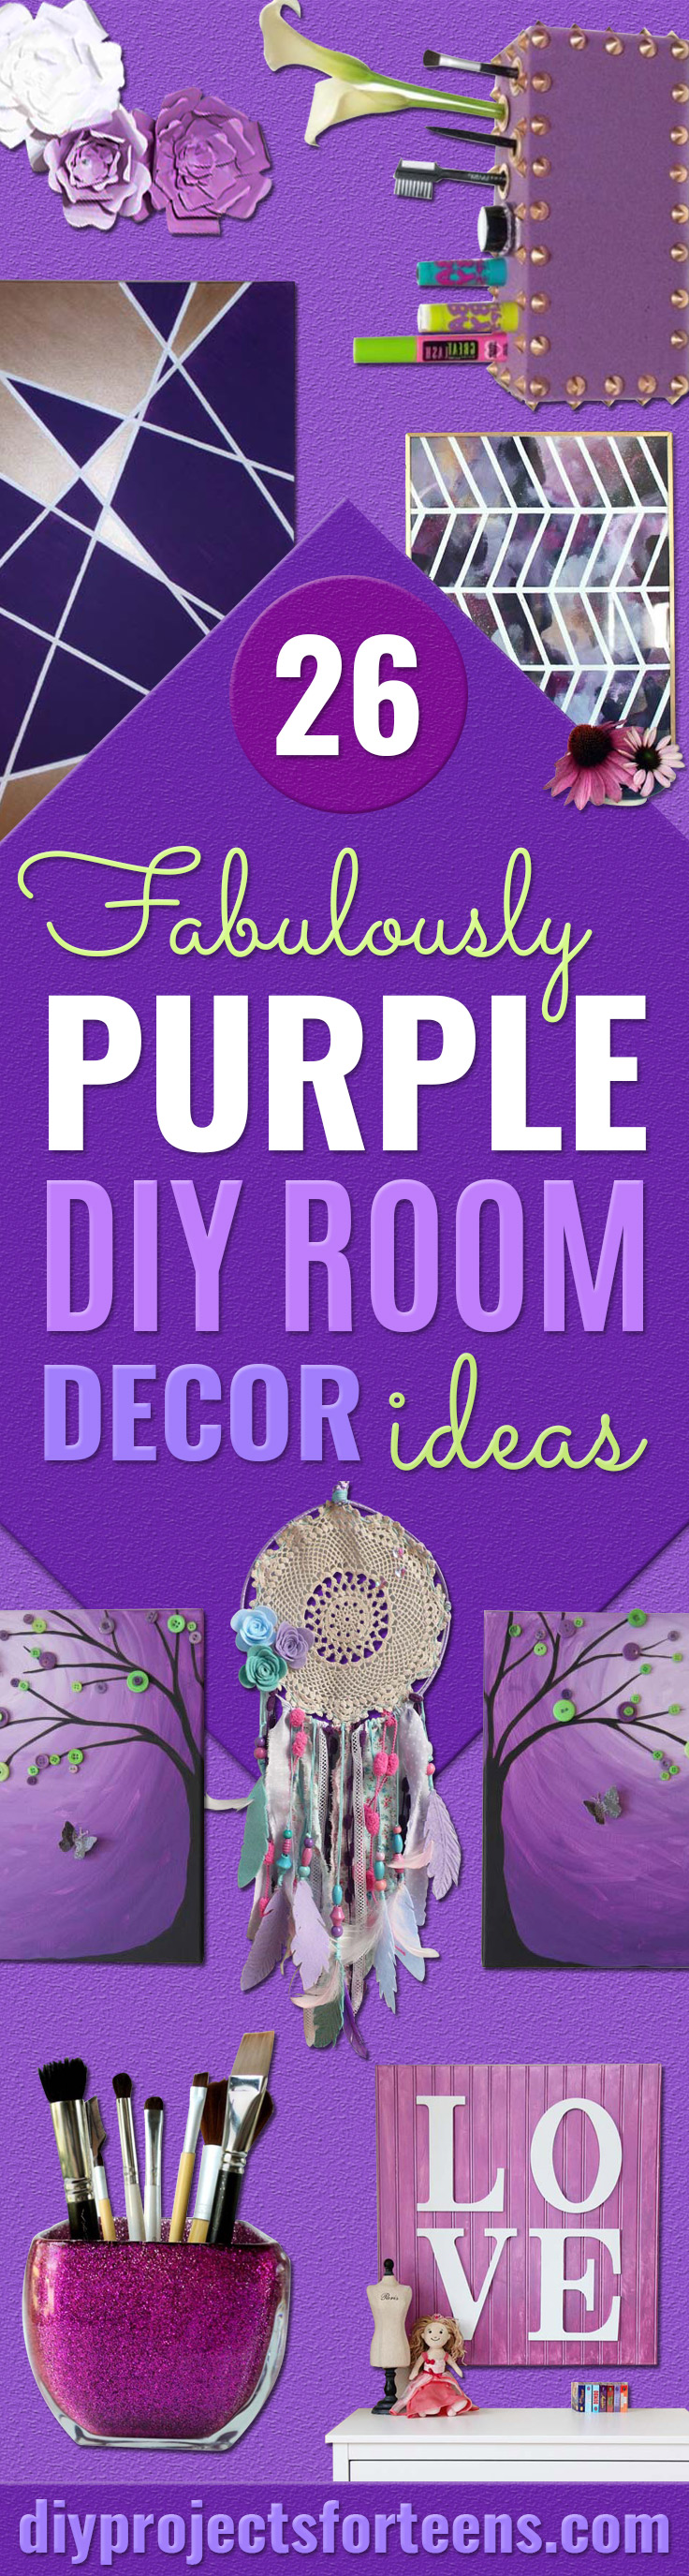 Bedroom Purple Decorating Ideas 26 fabulously purple diy room decor ideas